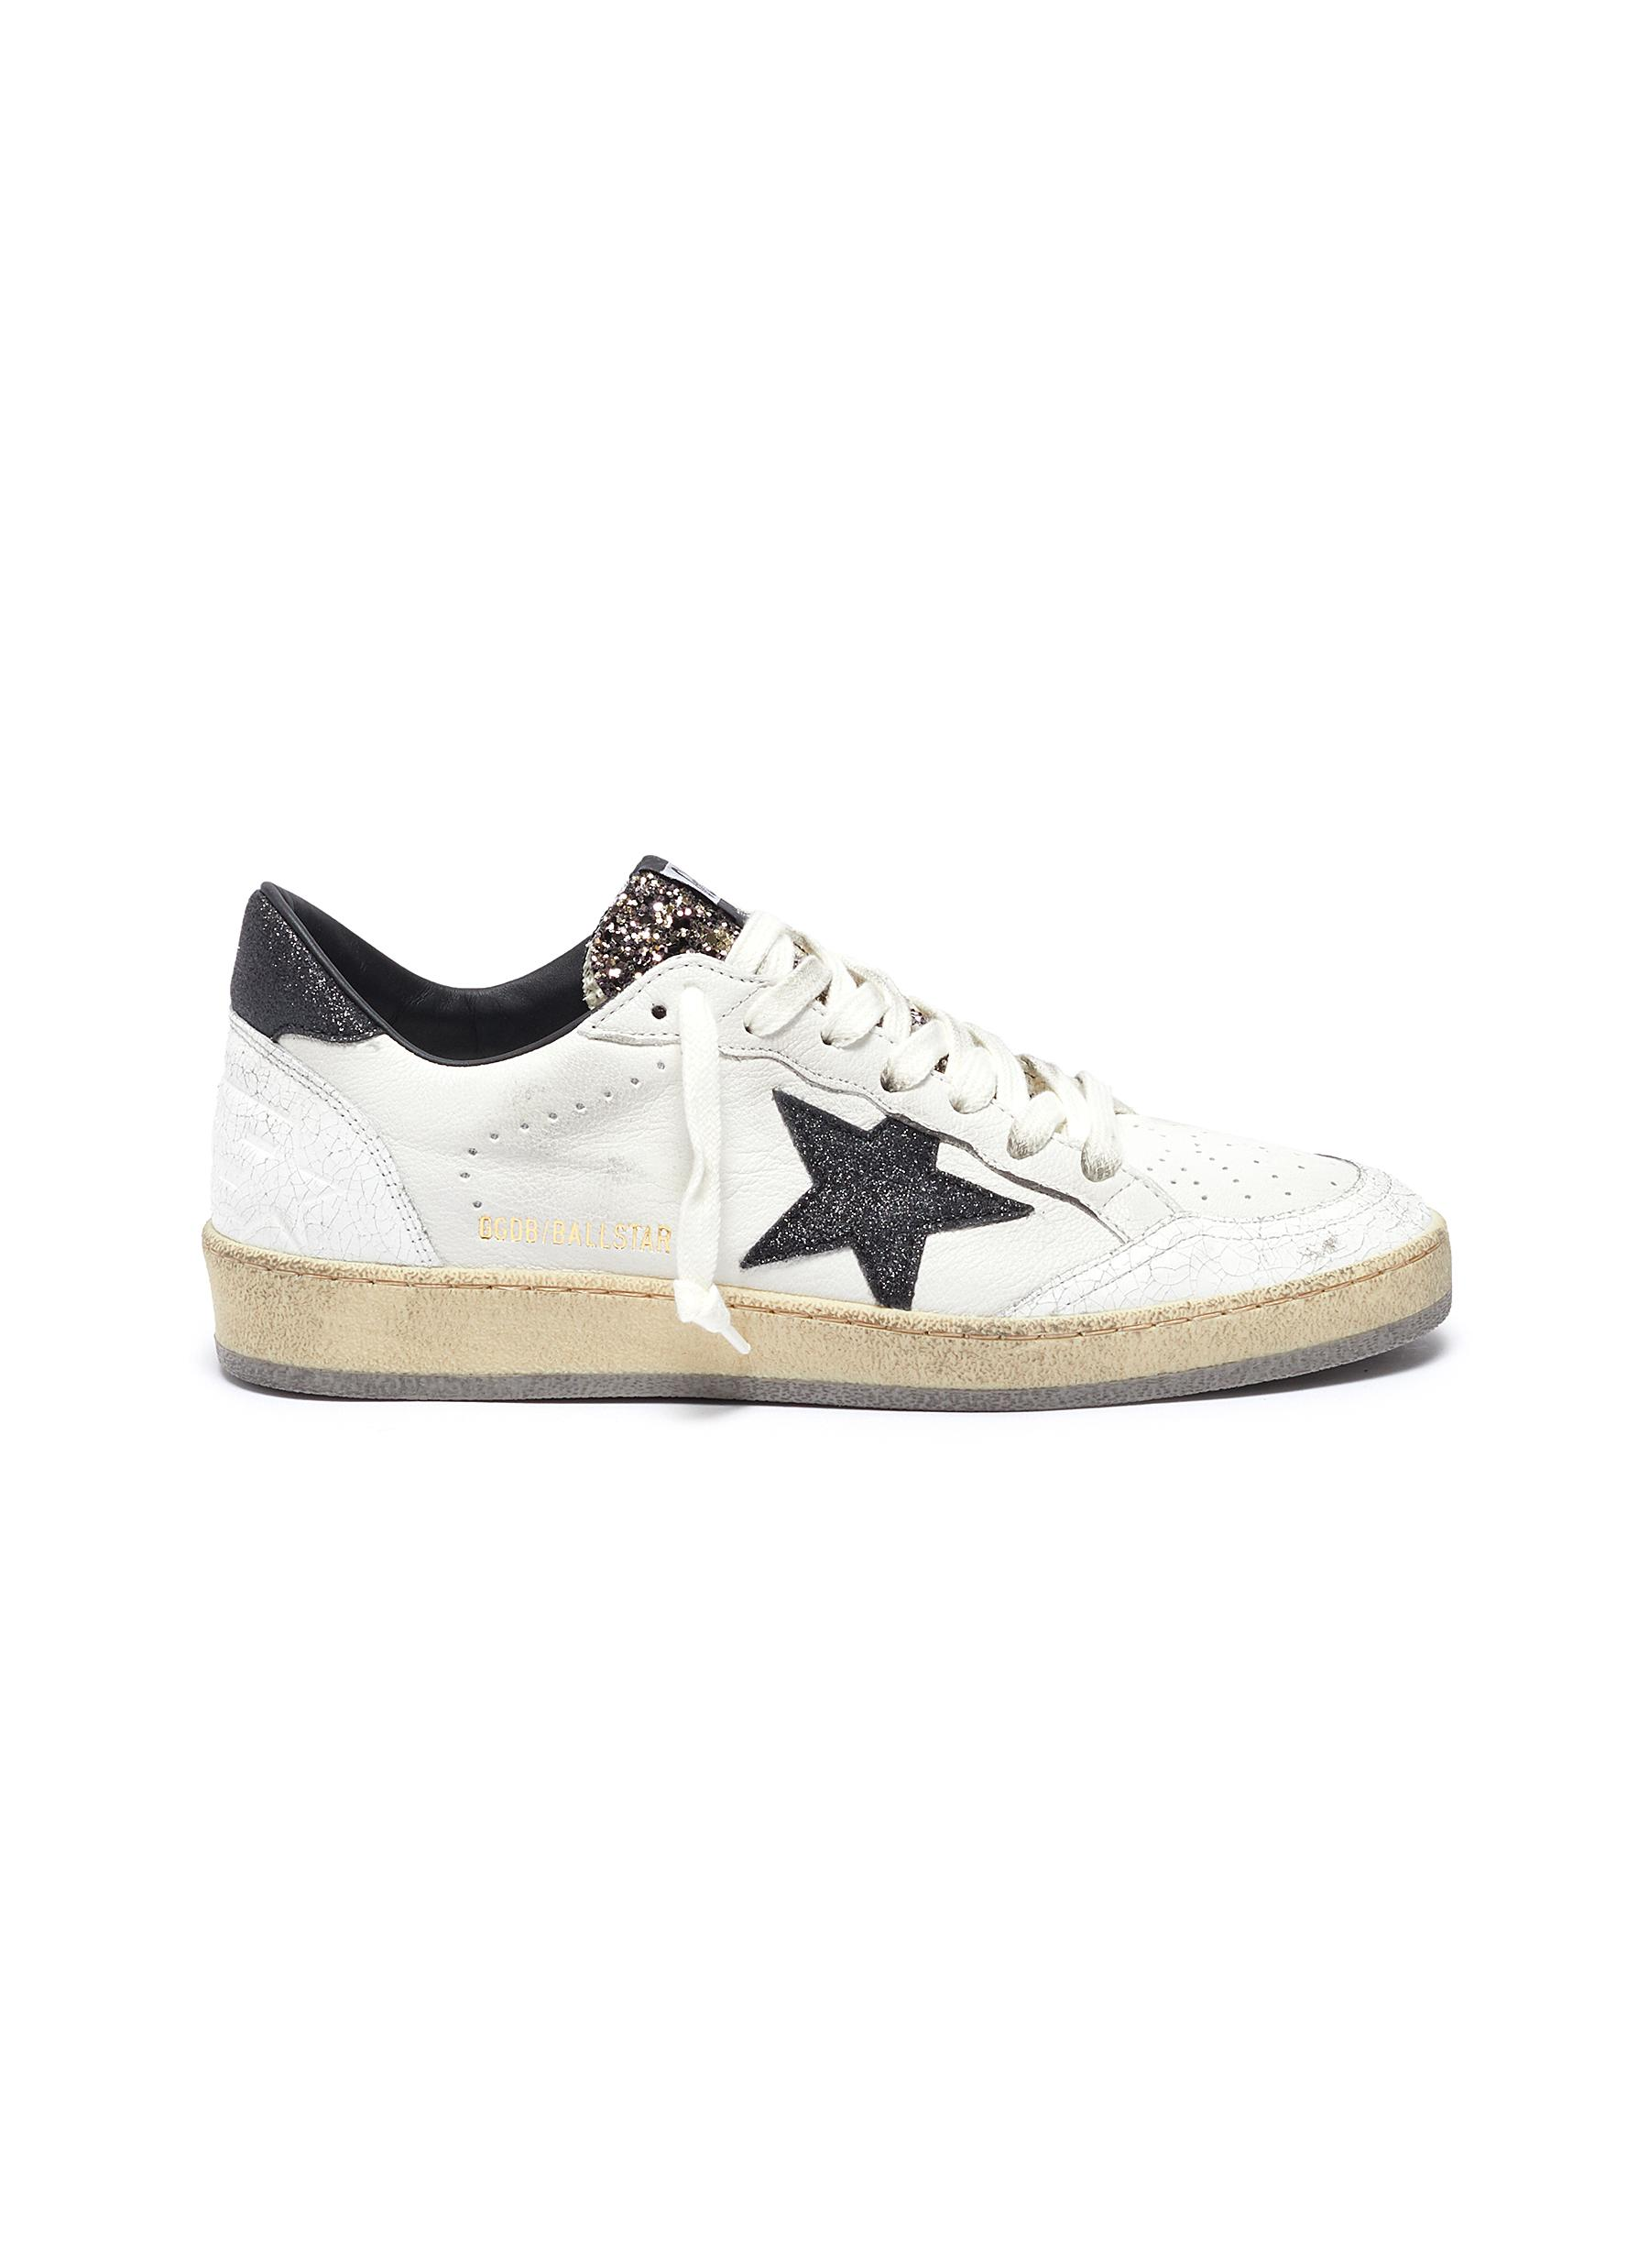 Superstar glitter collar leather sneakers by Golden Goose